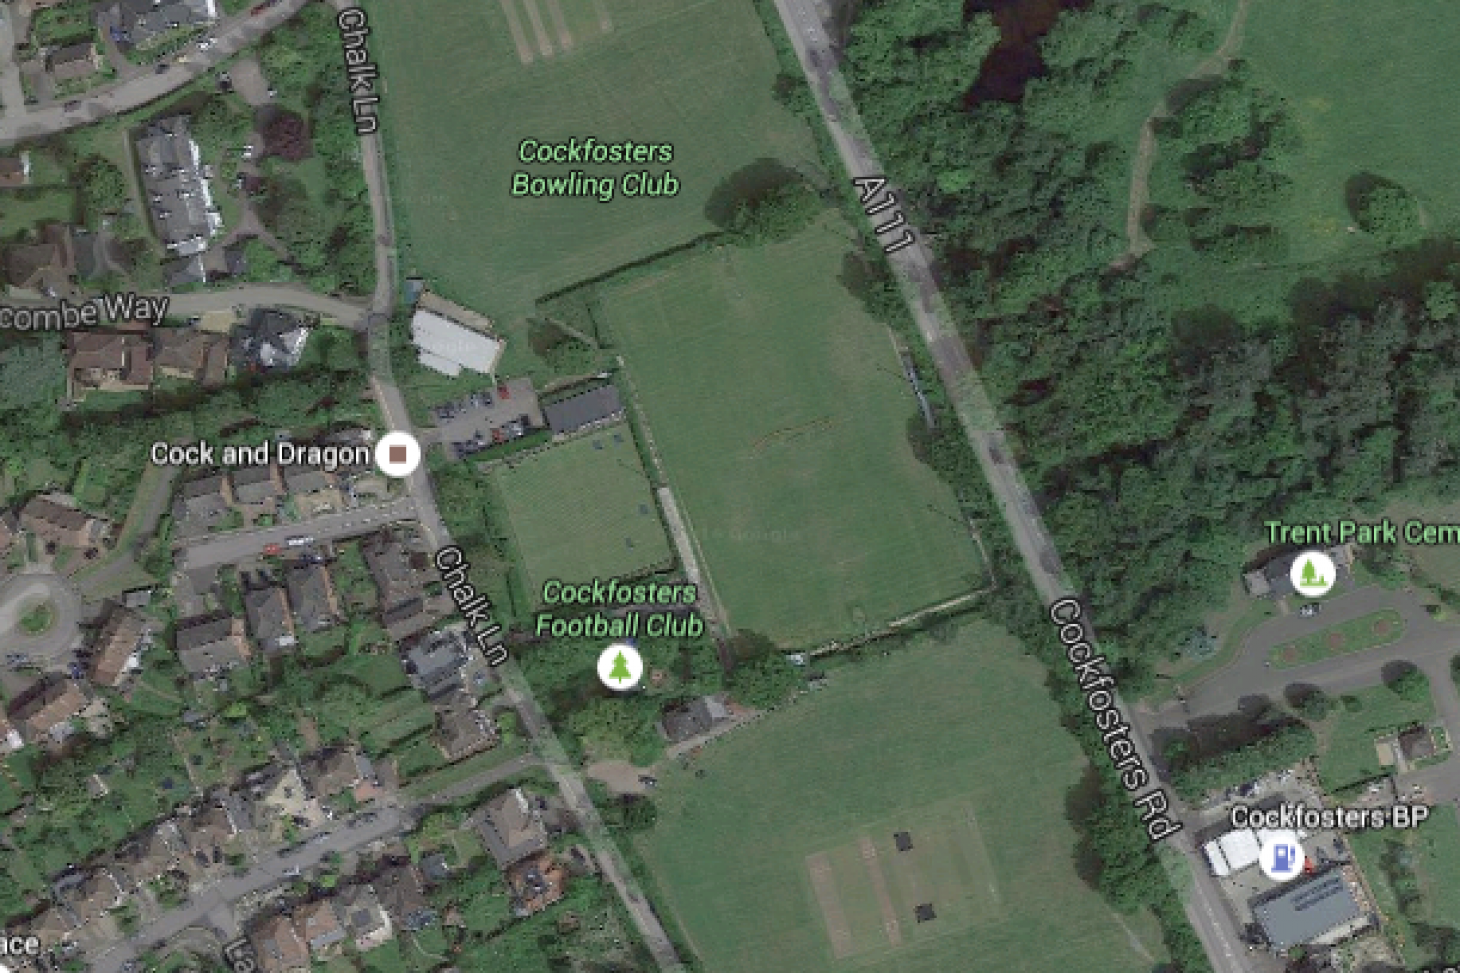 Cockfosters Sports Ground 11 a side | Grass football pitch